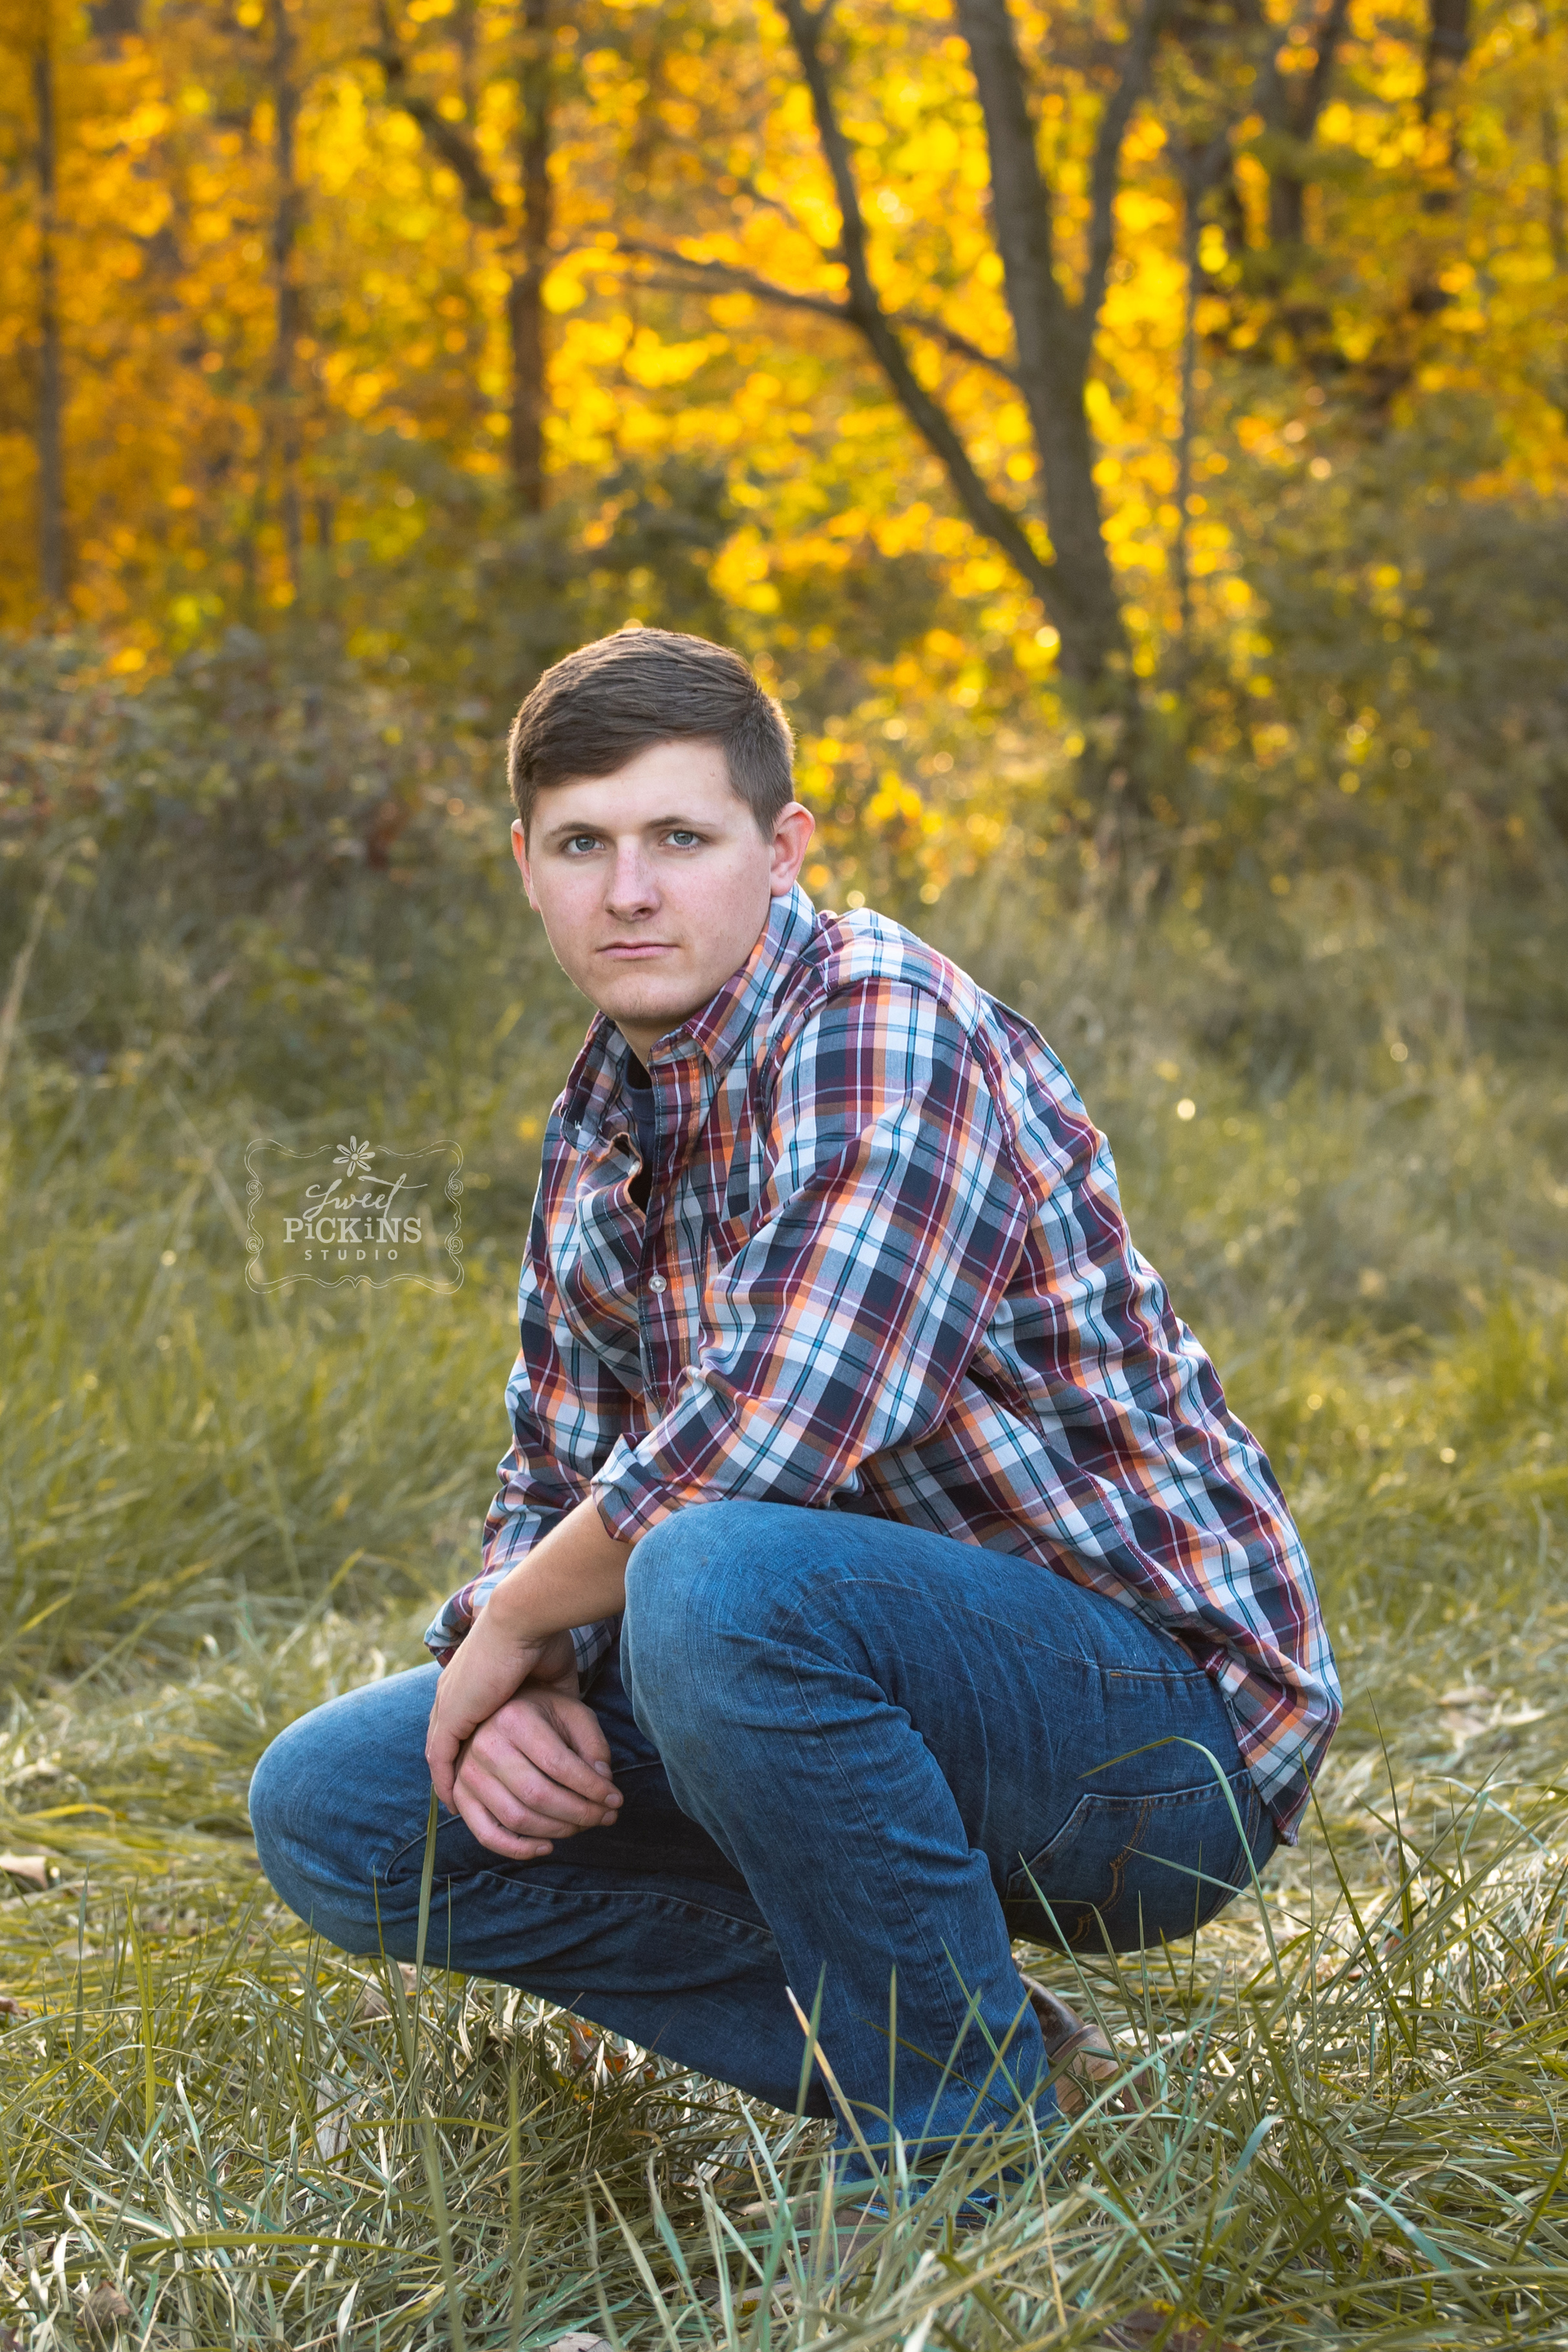 Bunker Hill, Indiana Senior Portrait Photography | Class of 2019 | Outdoor Fall Senior Guy